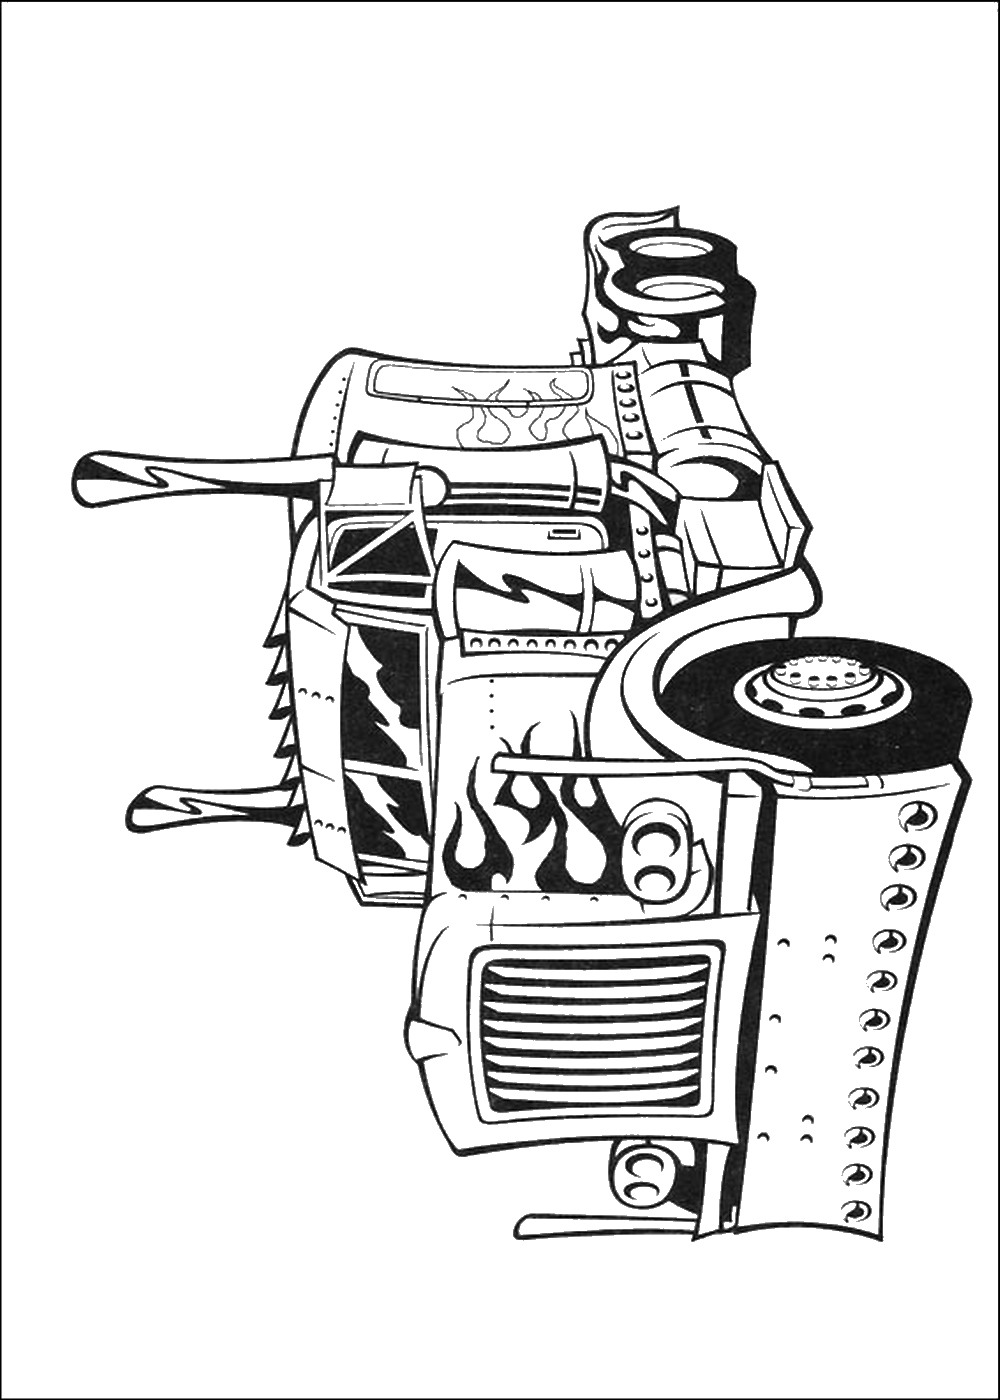 transformer for coloring transformers to color for kids transformers kids coloring transformer for